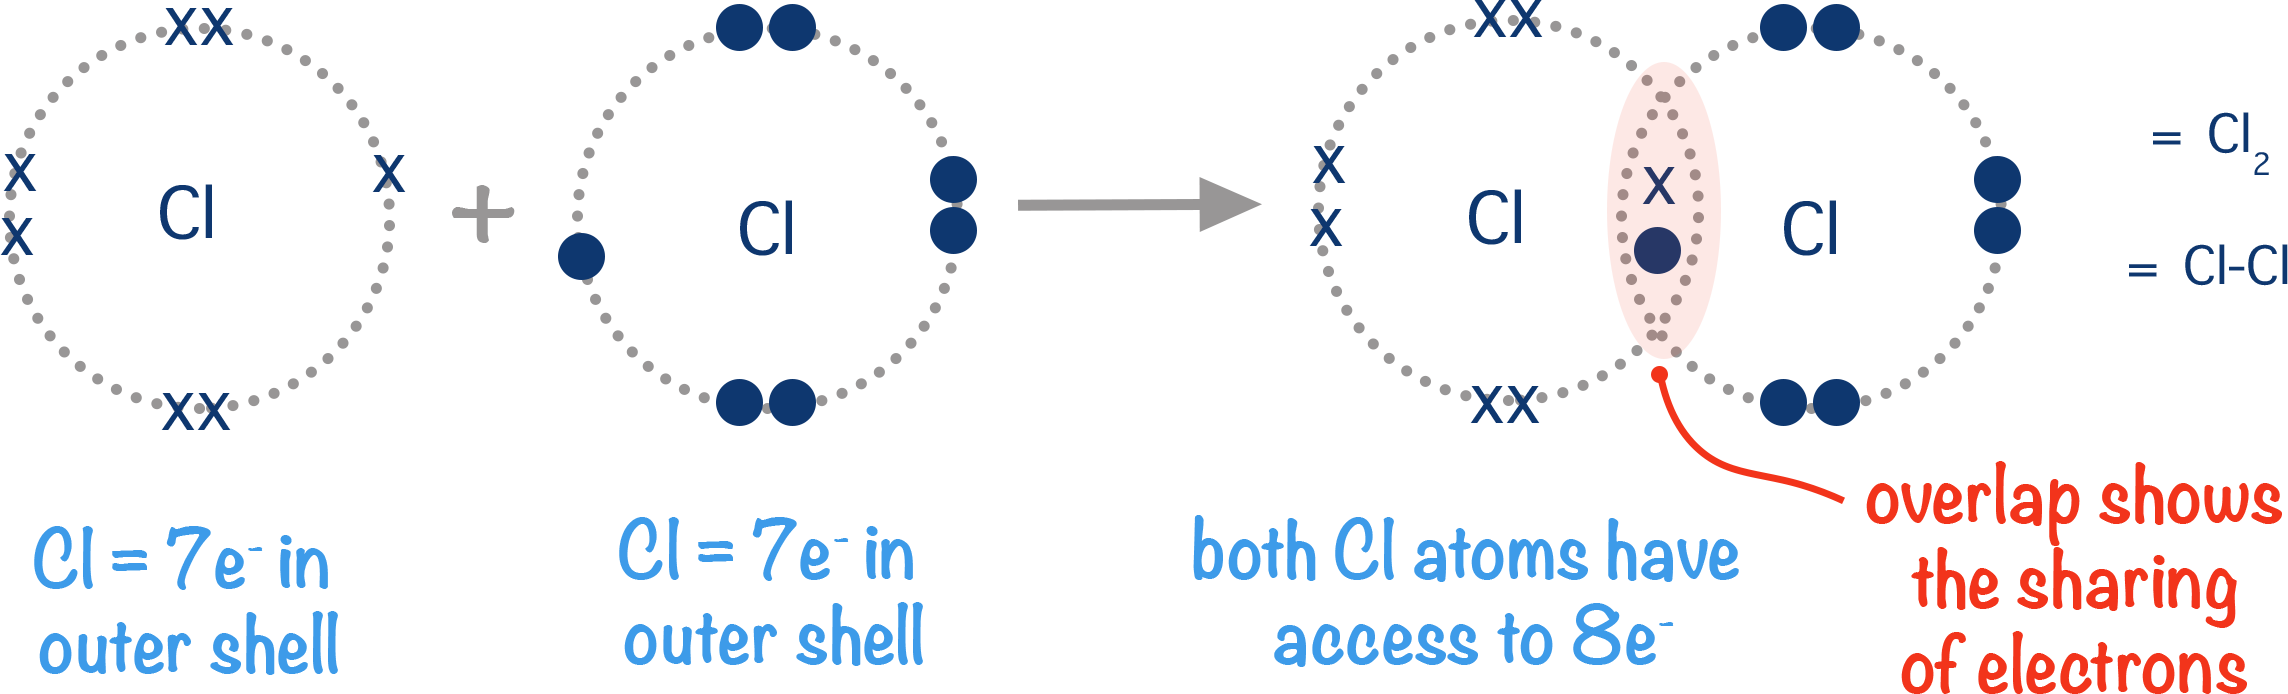 covalent bond between two atoms of chlorine sharing electrons a-level chemistry